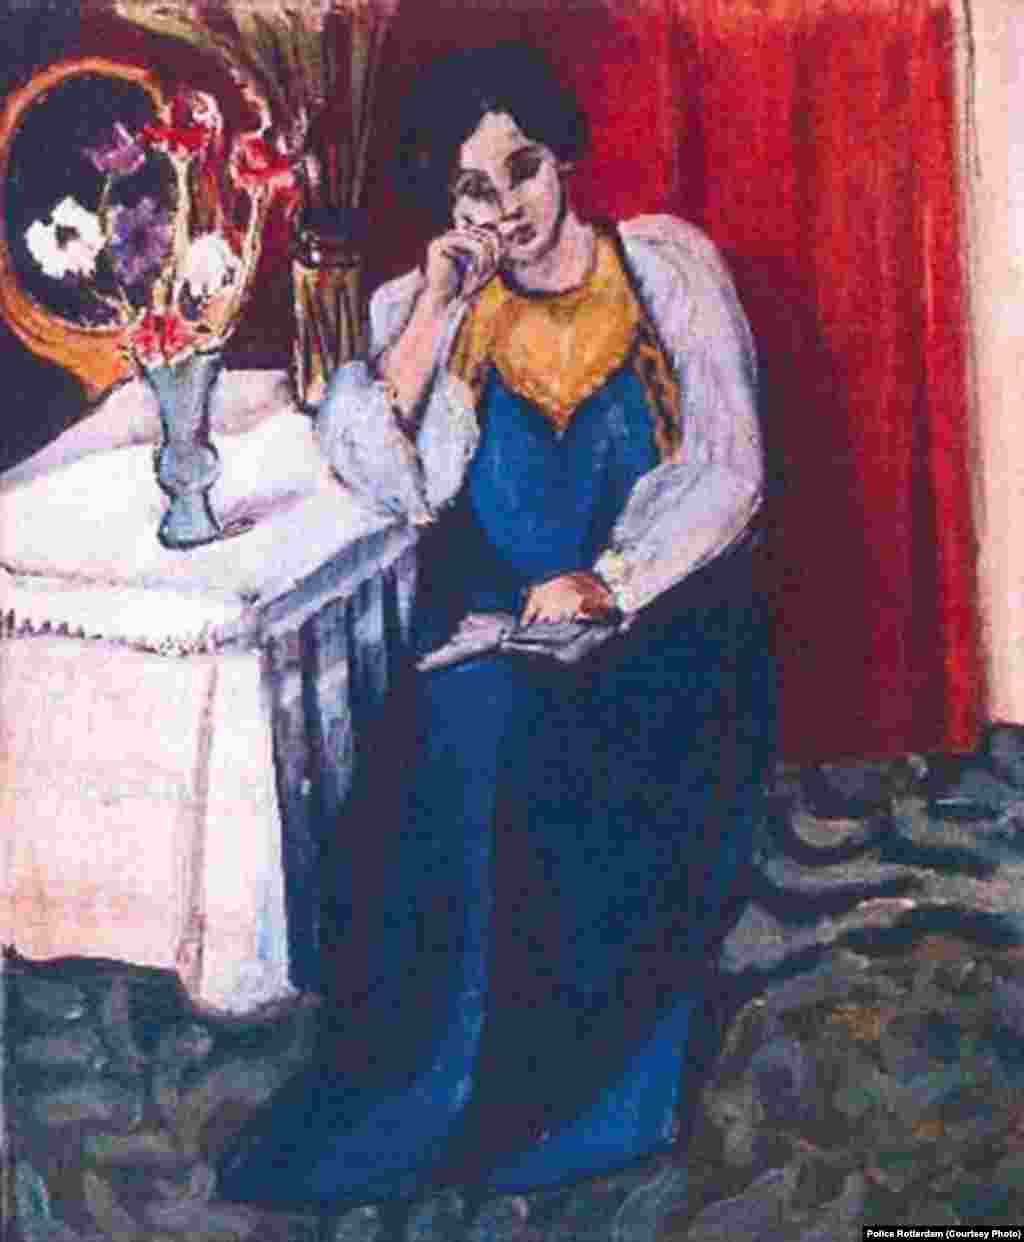 """Reading Girl in White and Yellow"" by Henri Matisse, 1919, is one of the paintings stolen from Kunsthal museum in Rotterdam."